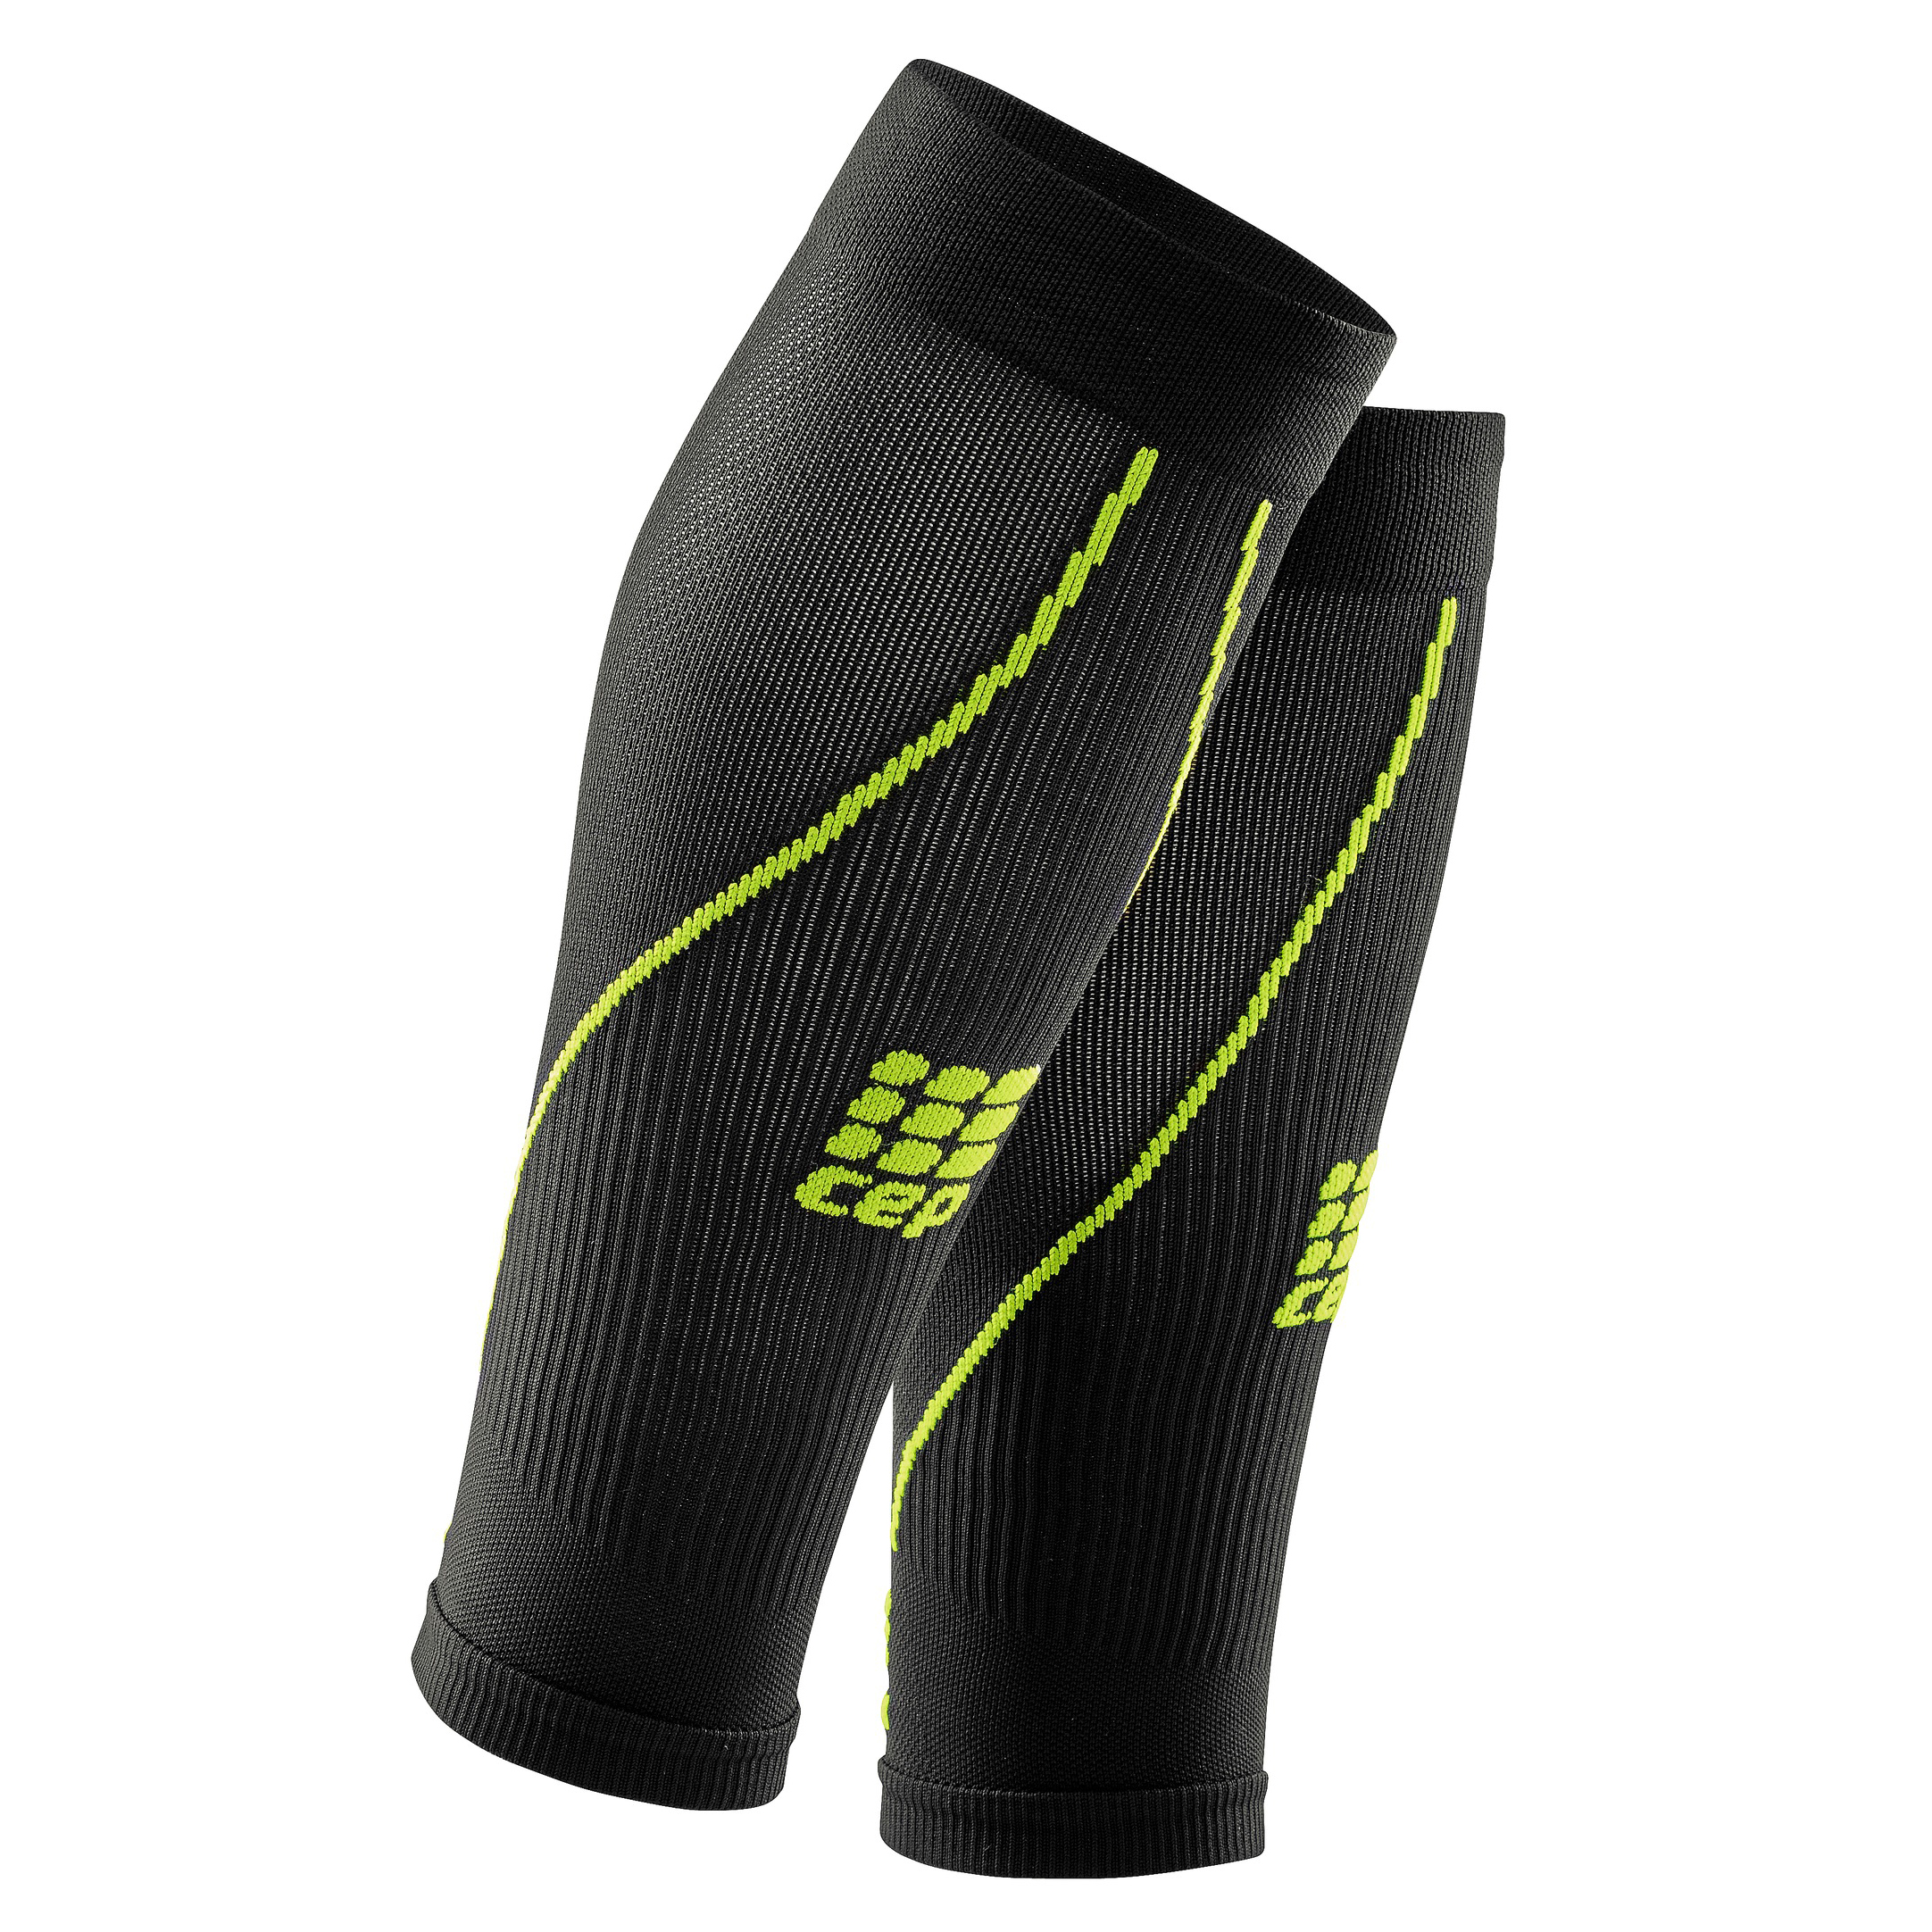 8888533f06 Details about CEP Men's Progressive+ Calf Sleeves 2.0 Black-Green Size III